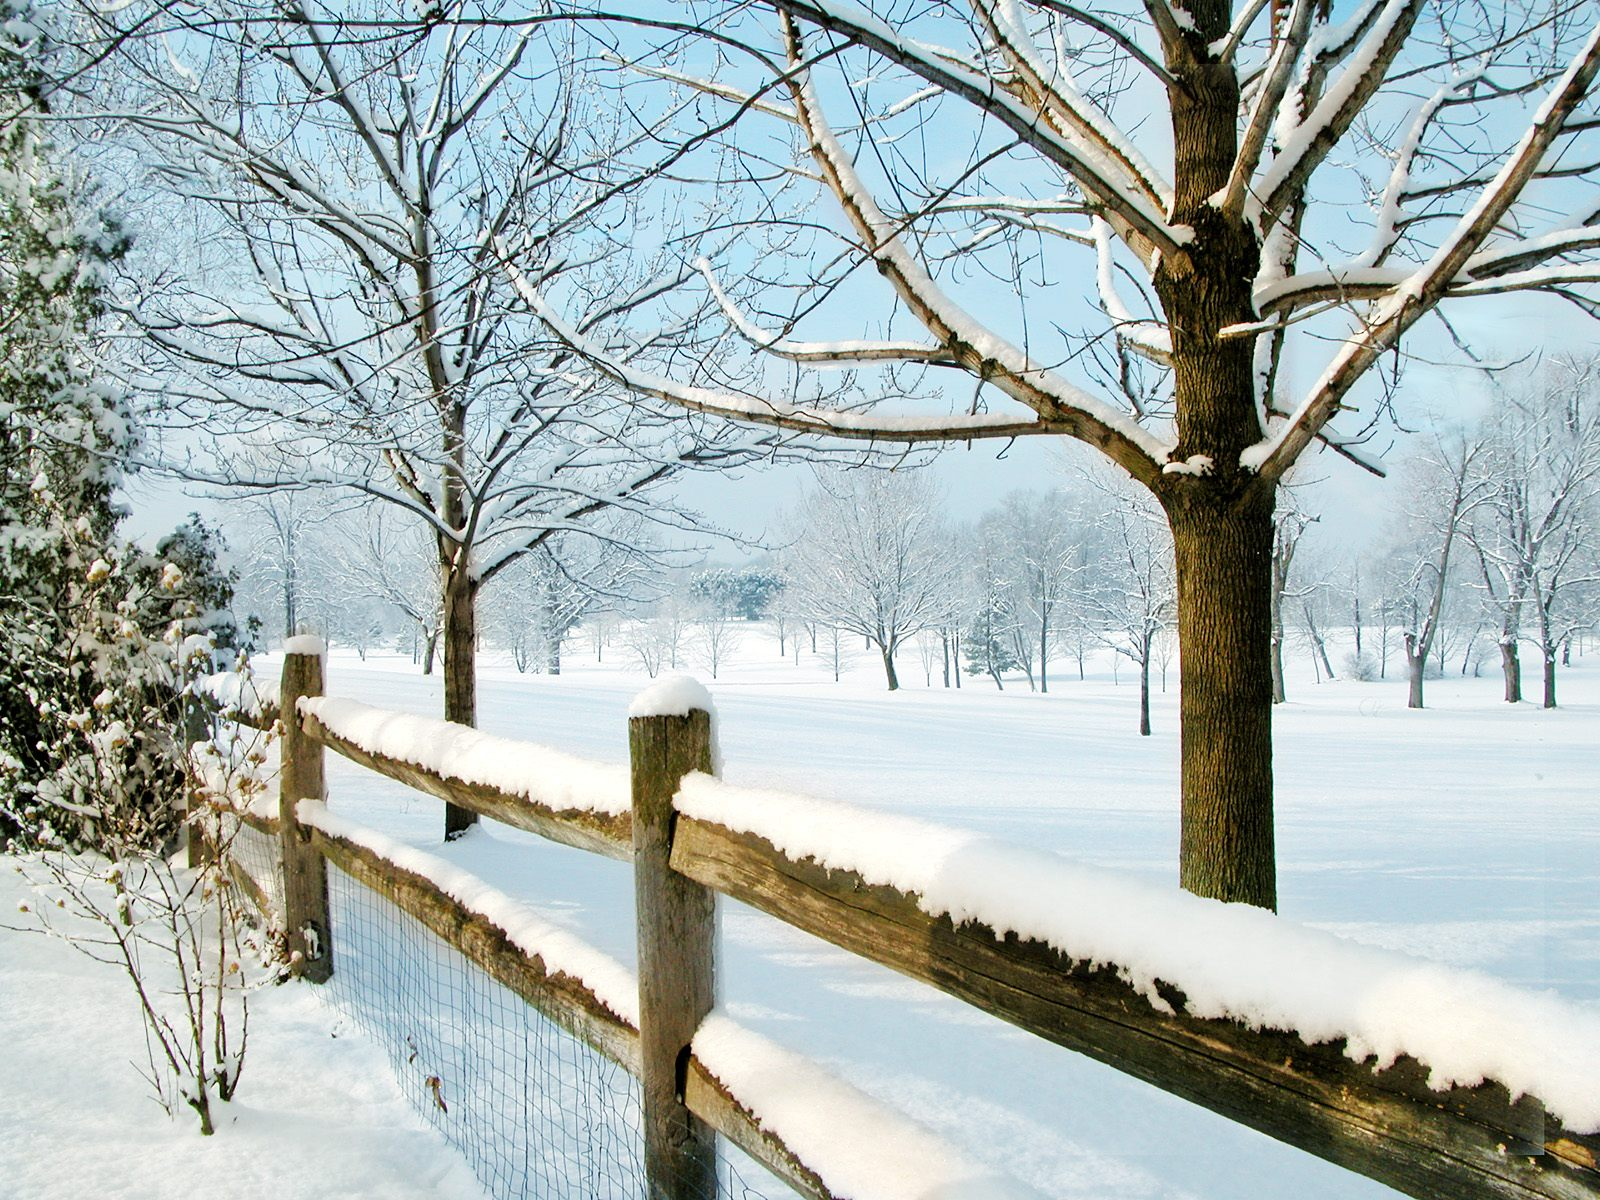 Winter Scene WallpapersWinter Wallpapers Pictures Download 1600x1200